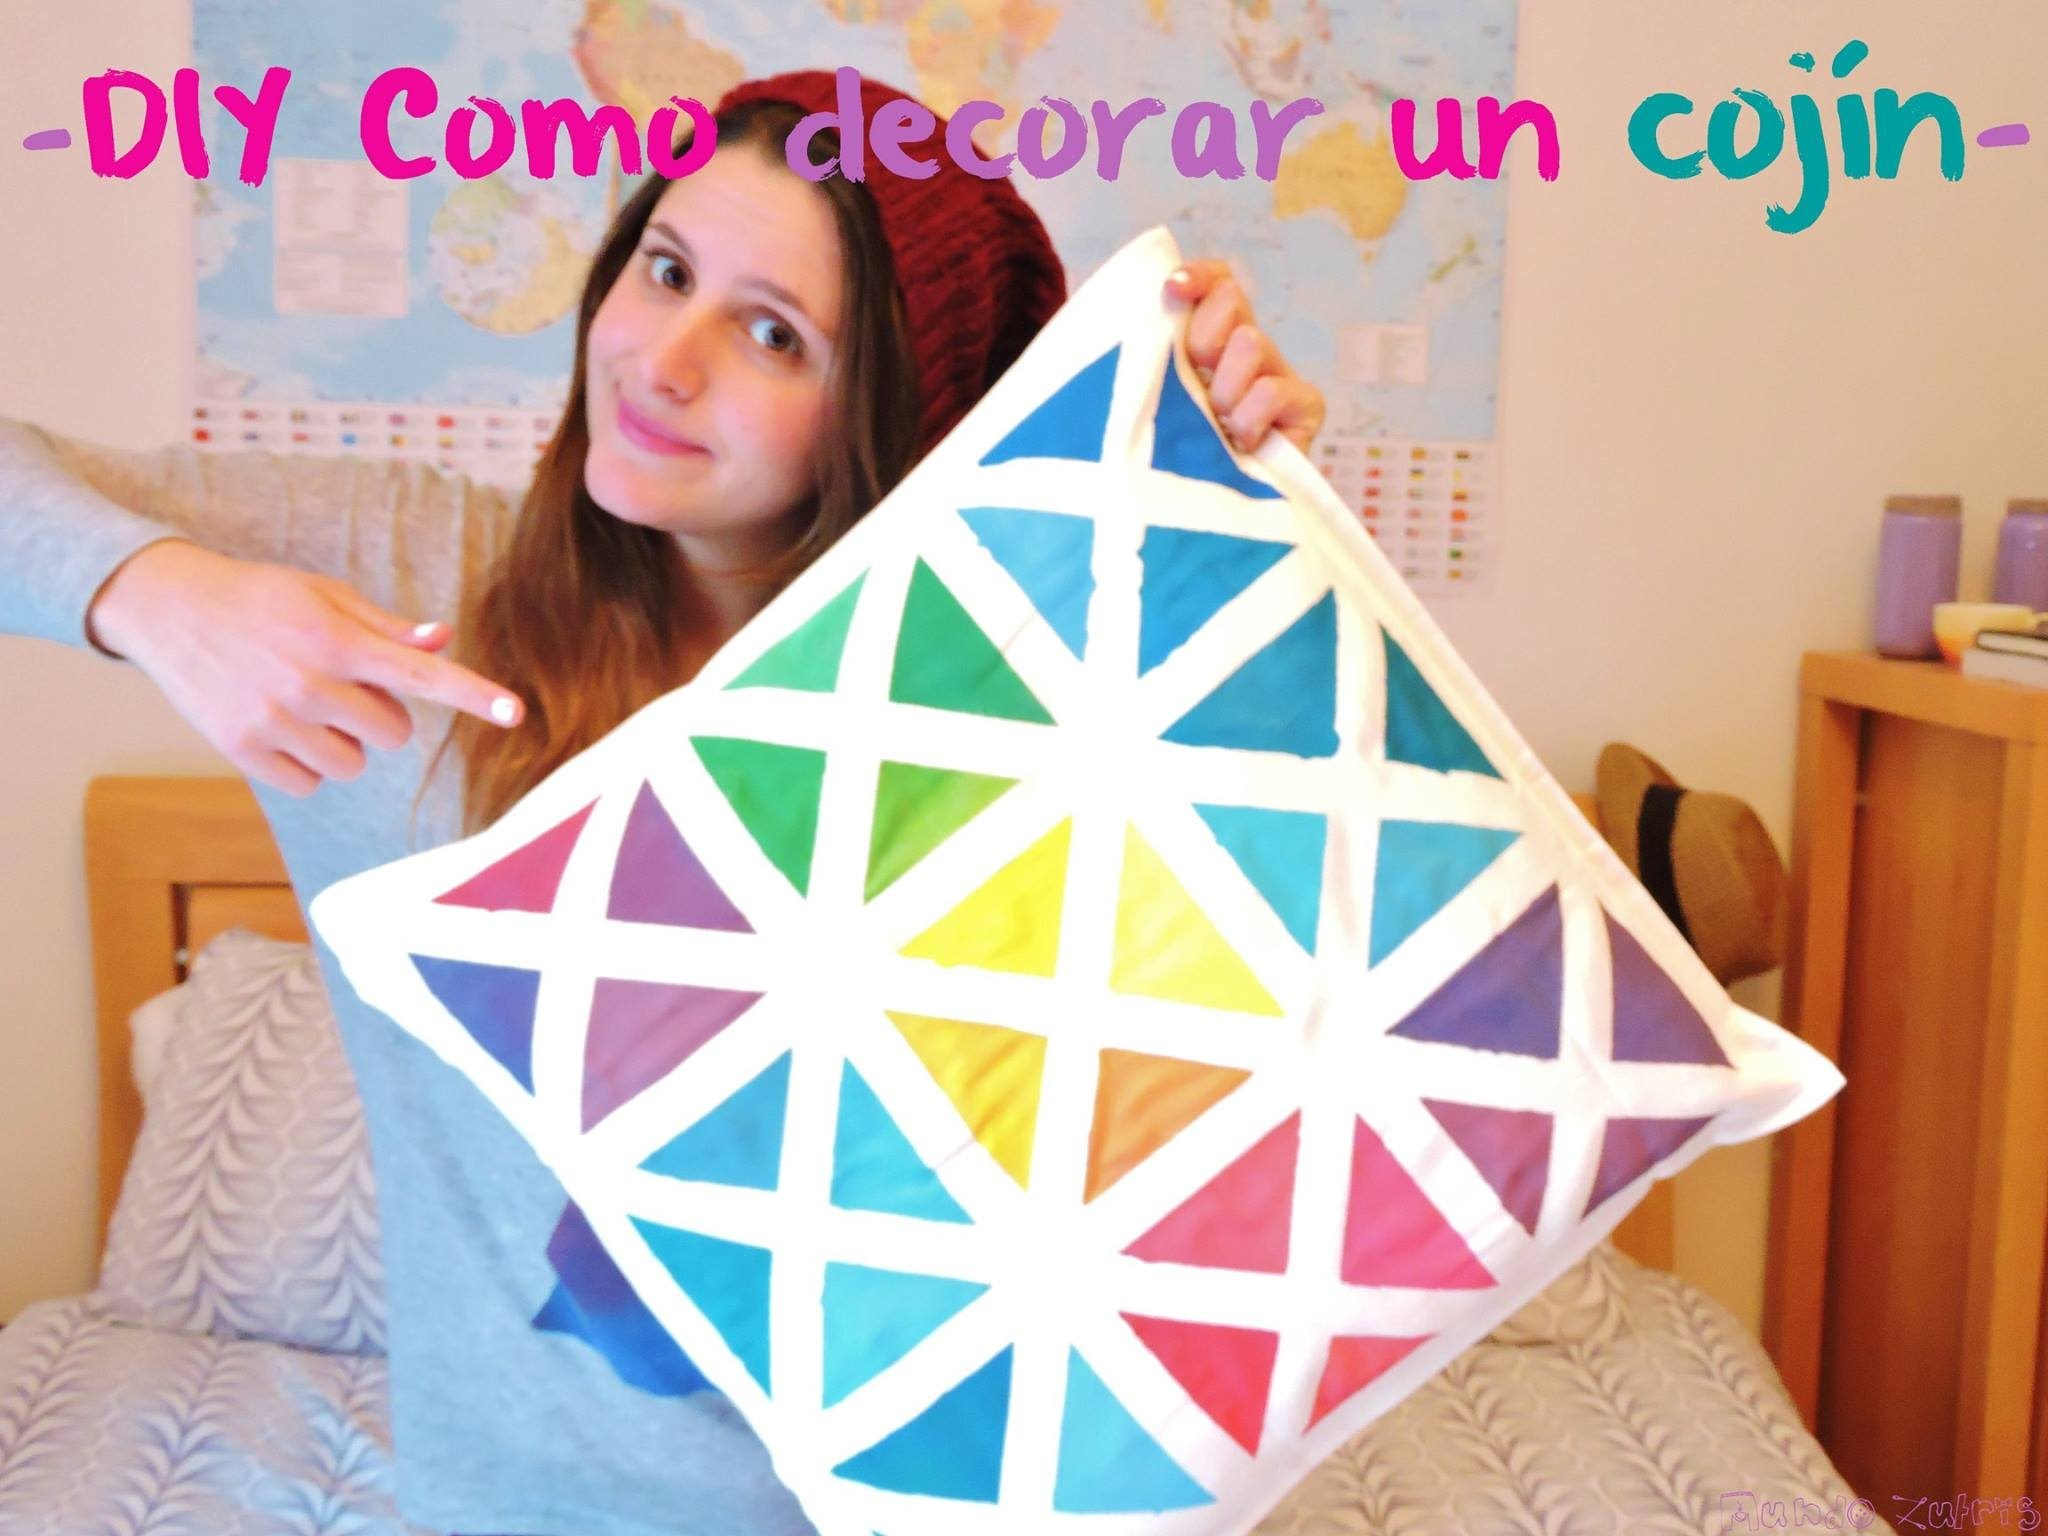 DIY Como decorar un cojín. DIY How to decorate a pillow